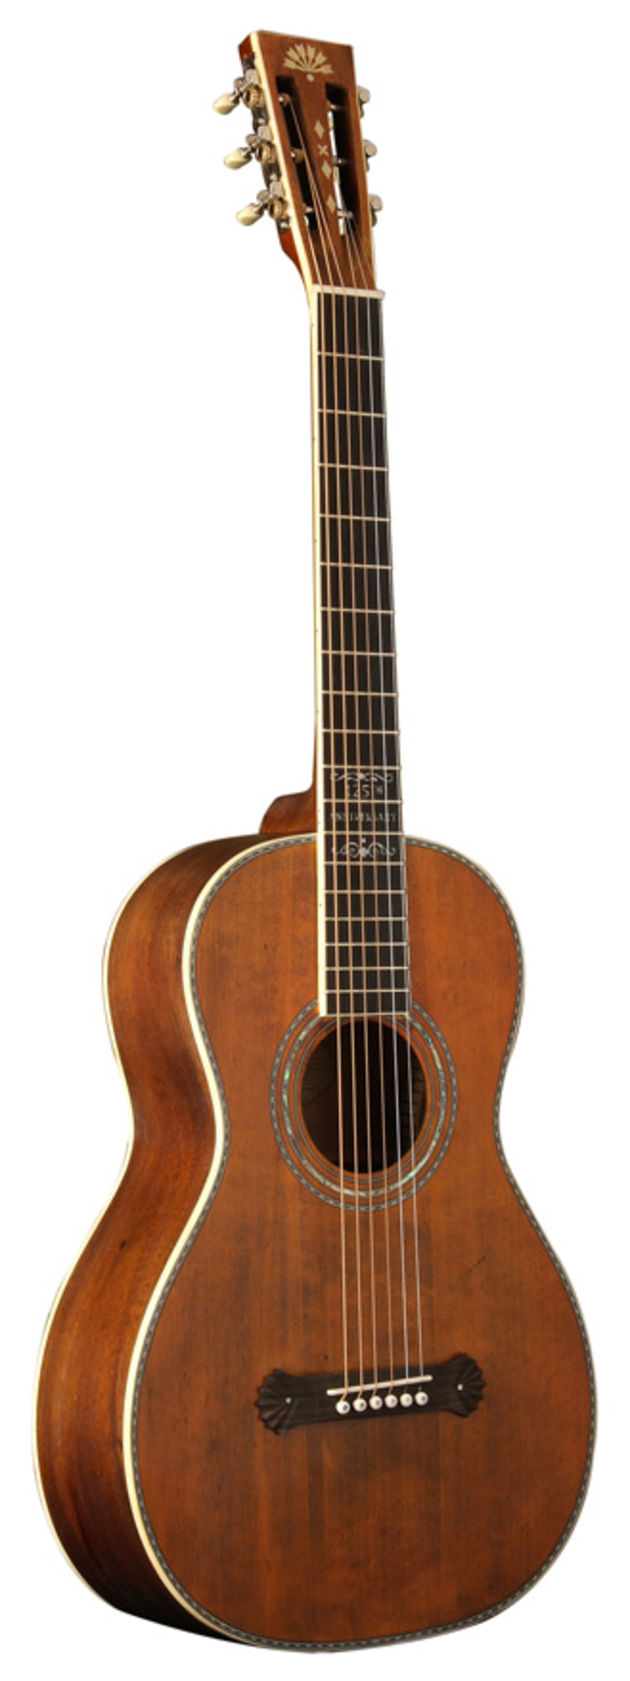 The Washburn R316SWKK parlour acoustic